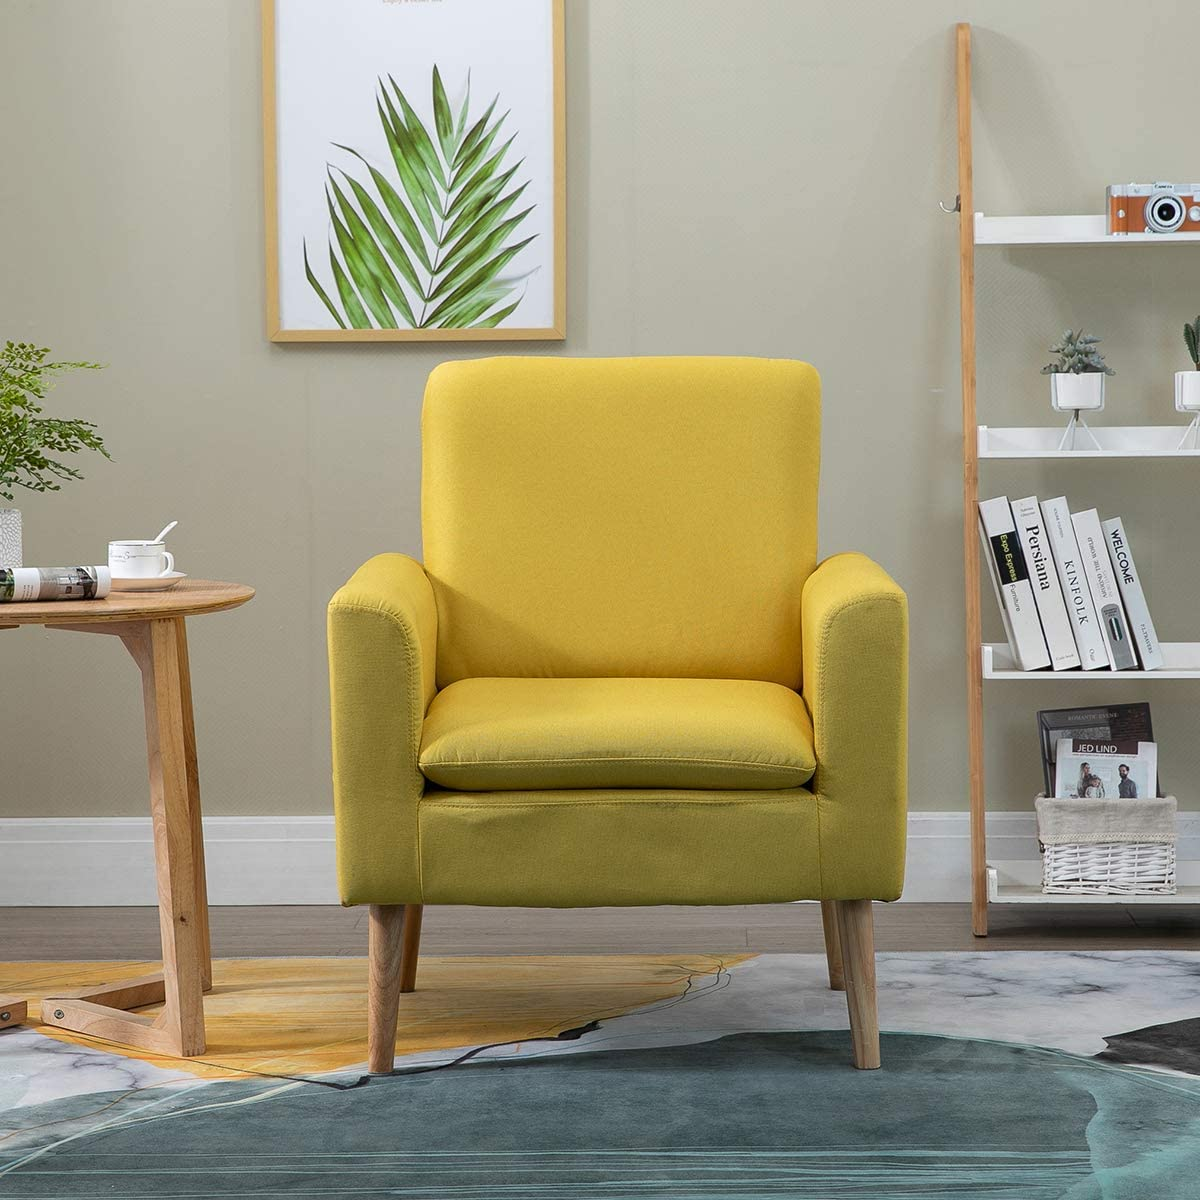 Vanimeu Yellow Accent Chair Armchair Sofa Chairs Linen Fabric with